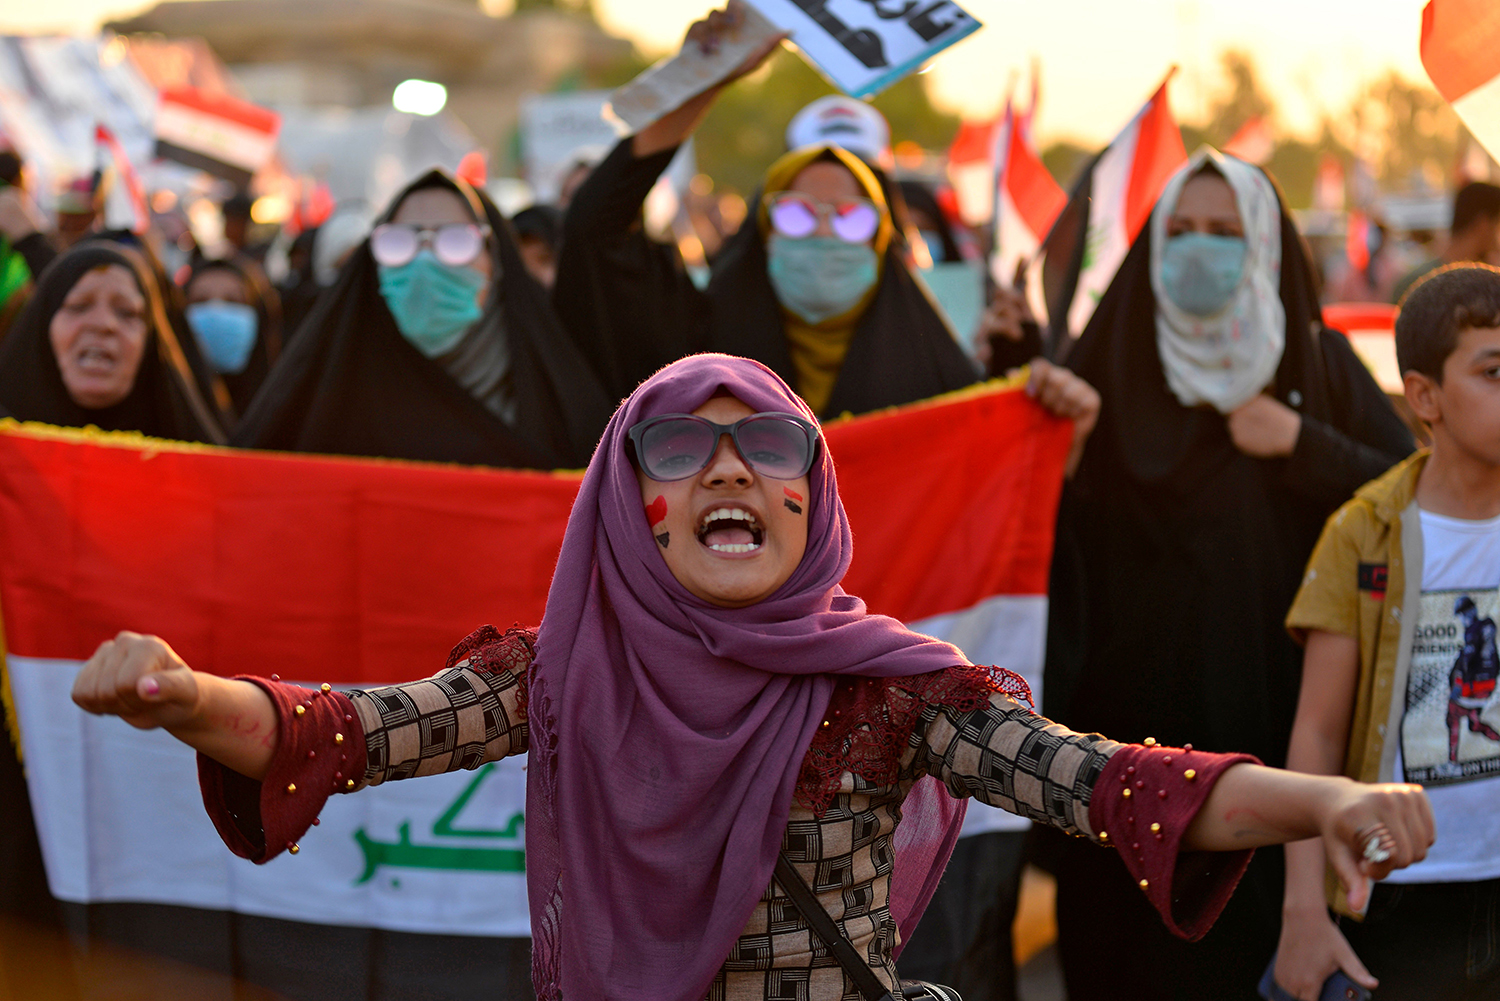 Iraqi women chant slogans and wave the national flag during protests in Najaf on Oct. 30. -/AFP via Getty Images